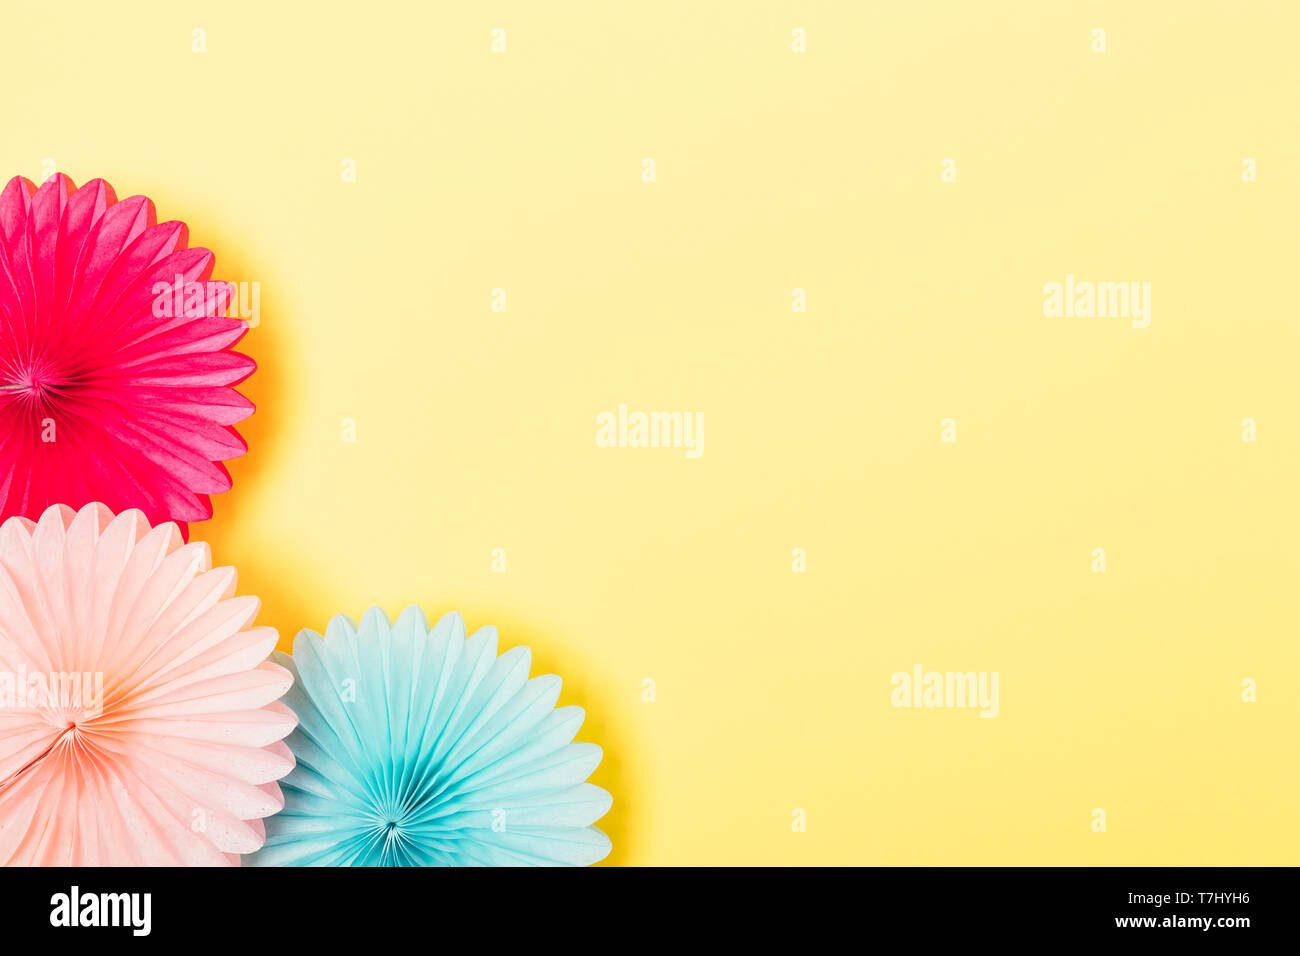 Party Background Of Tissue Paper Decorations Of Pink And